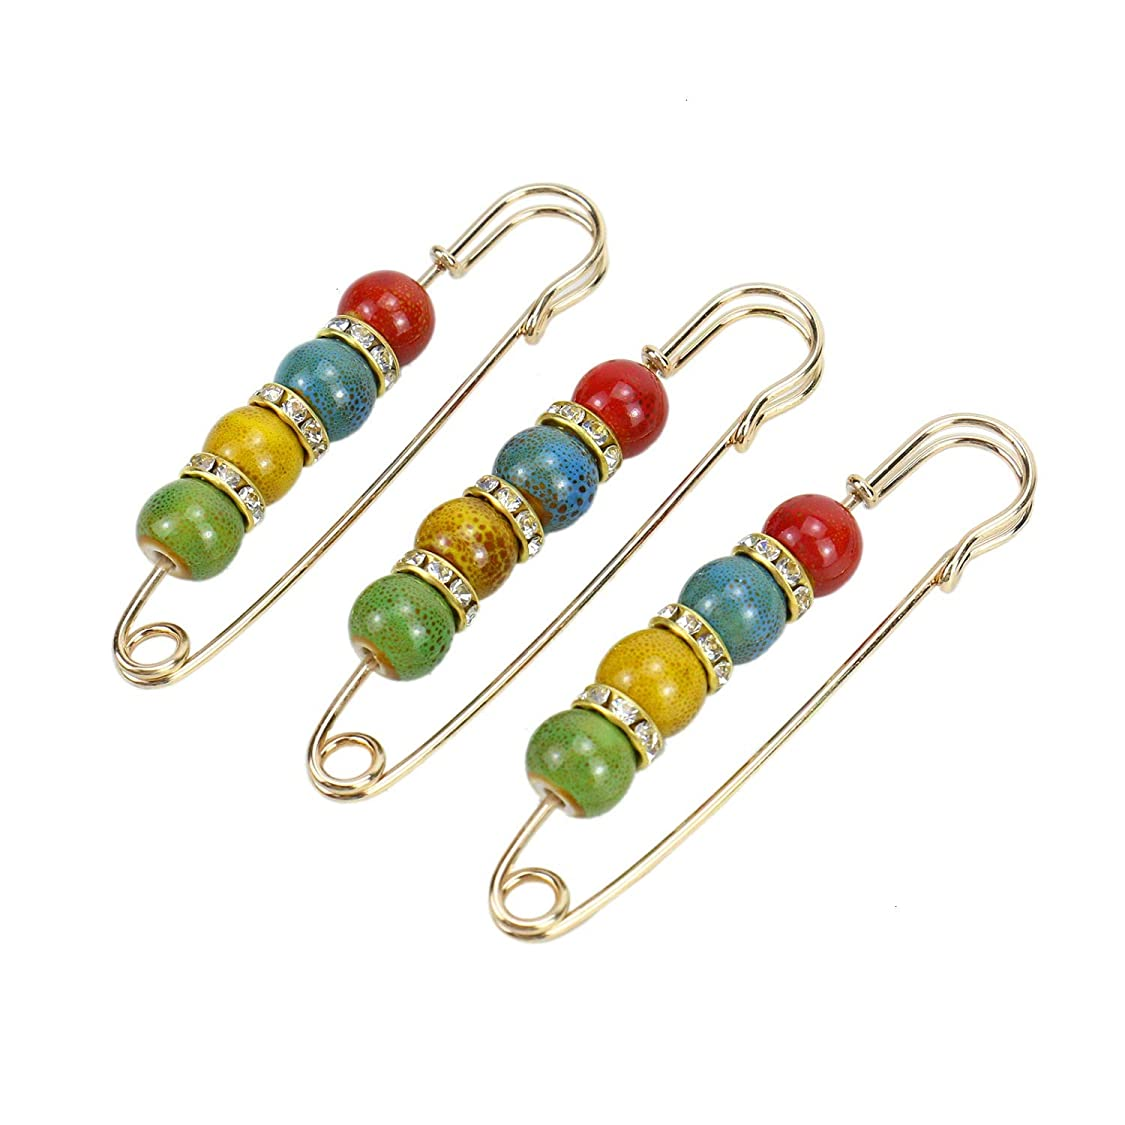 Monrocco 3 Pieces Brooches Safety Pins Creative Colorful Ceramics Beads Pins Cardigan Sweater Pins Accessories zo67211935098611